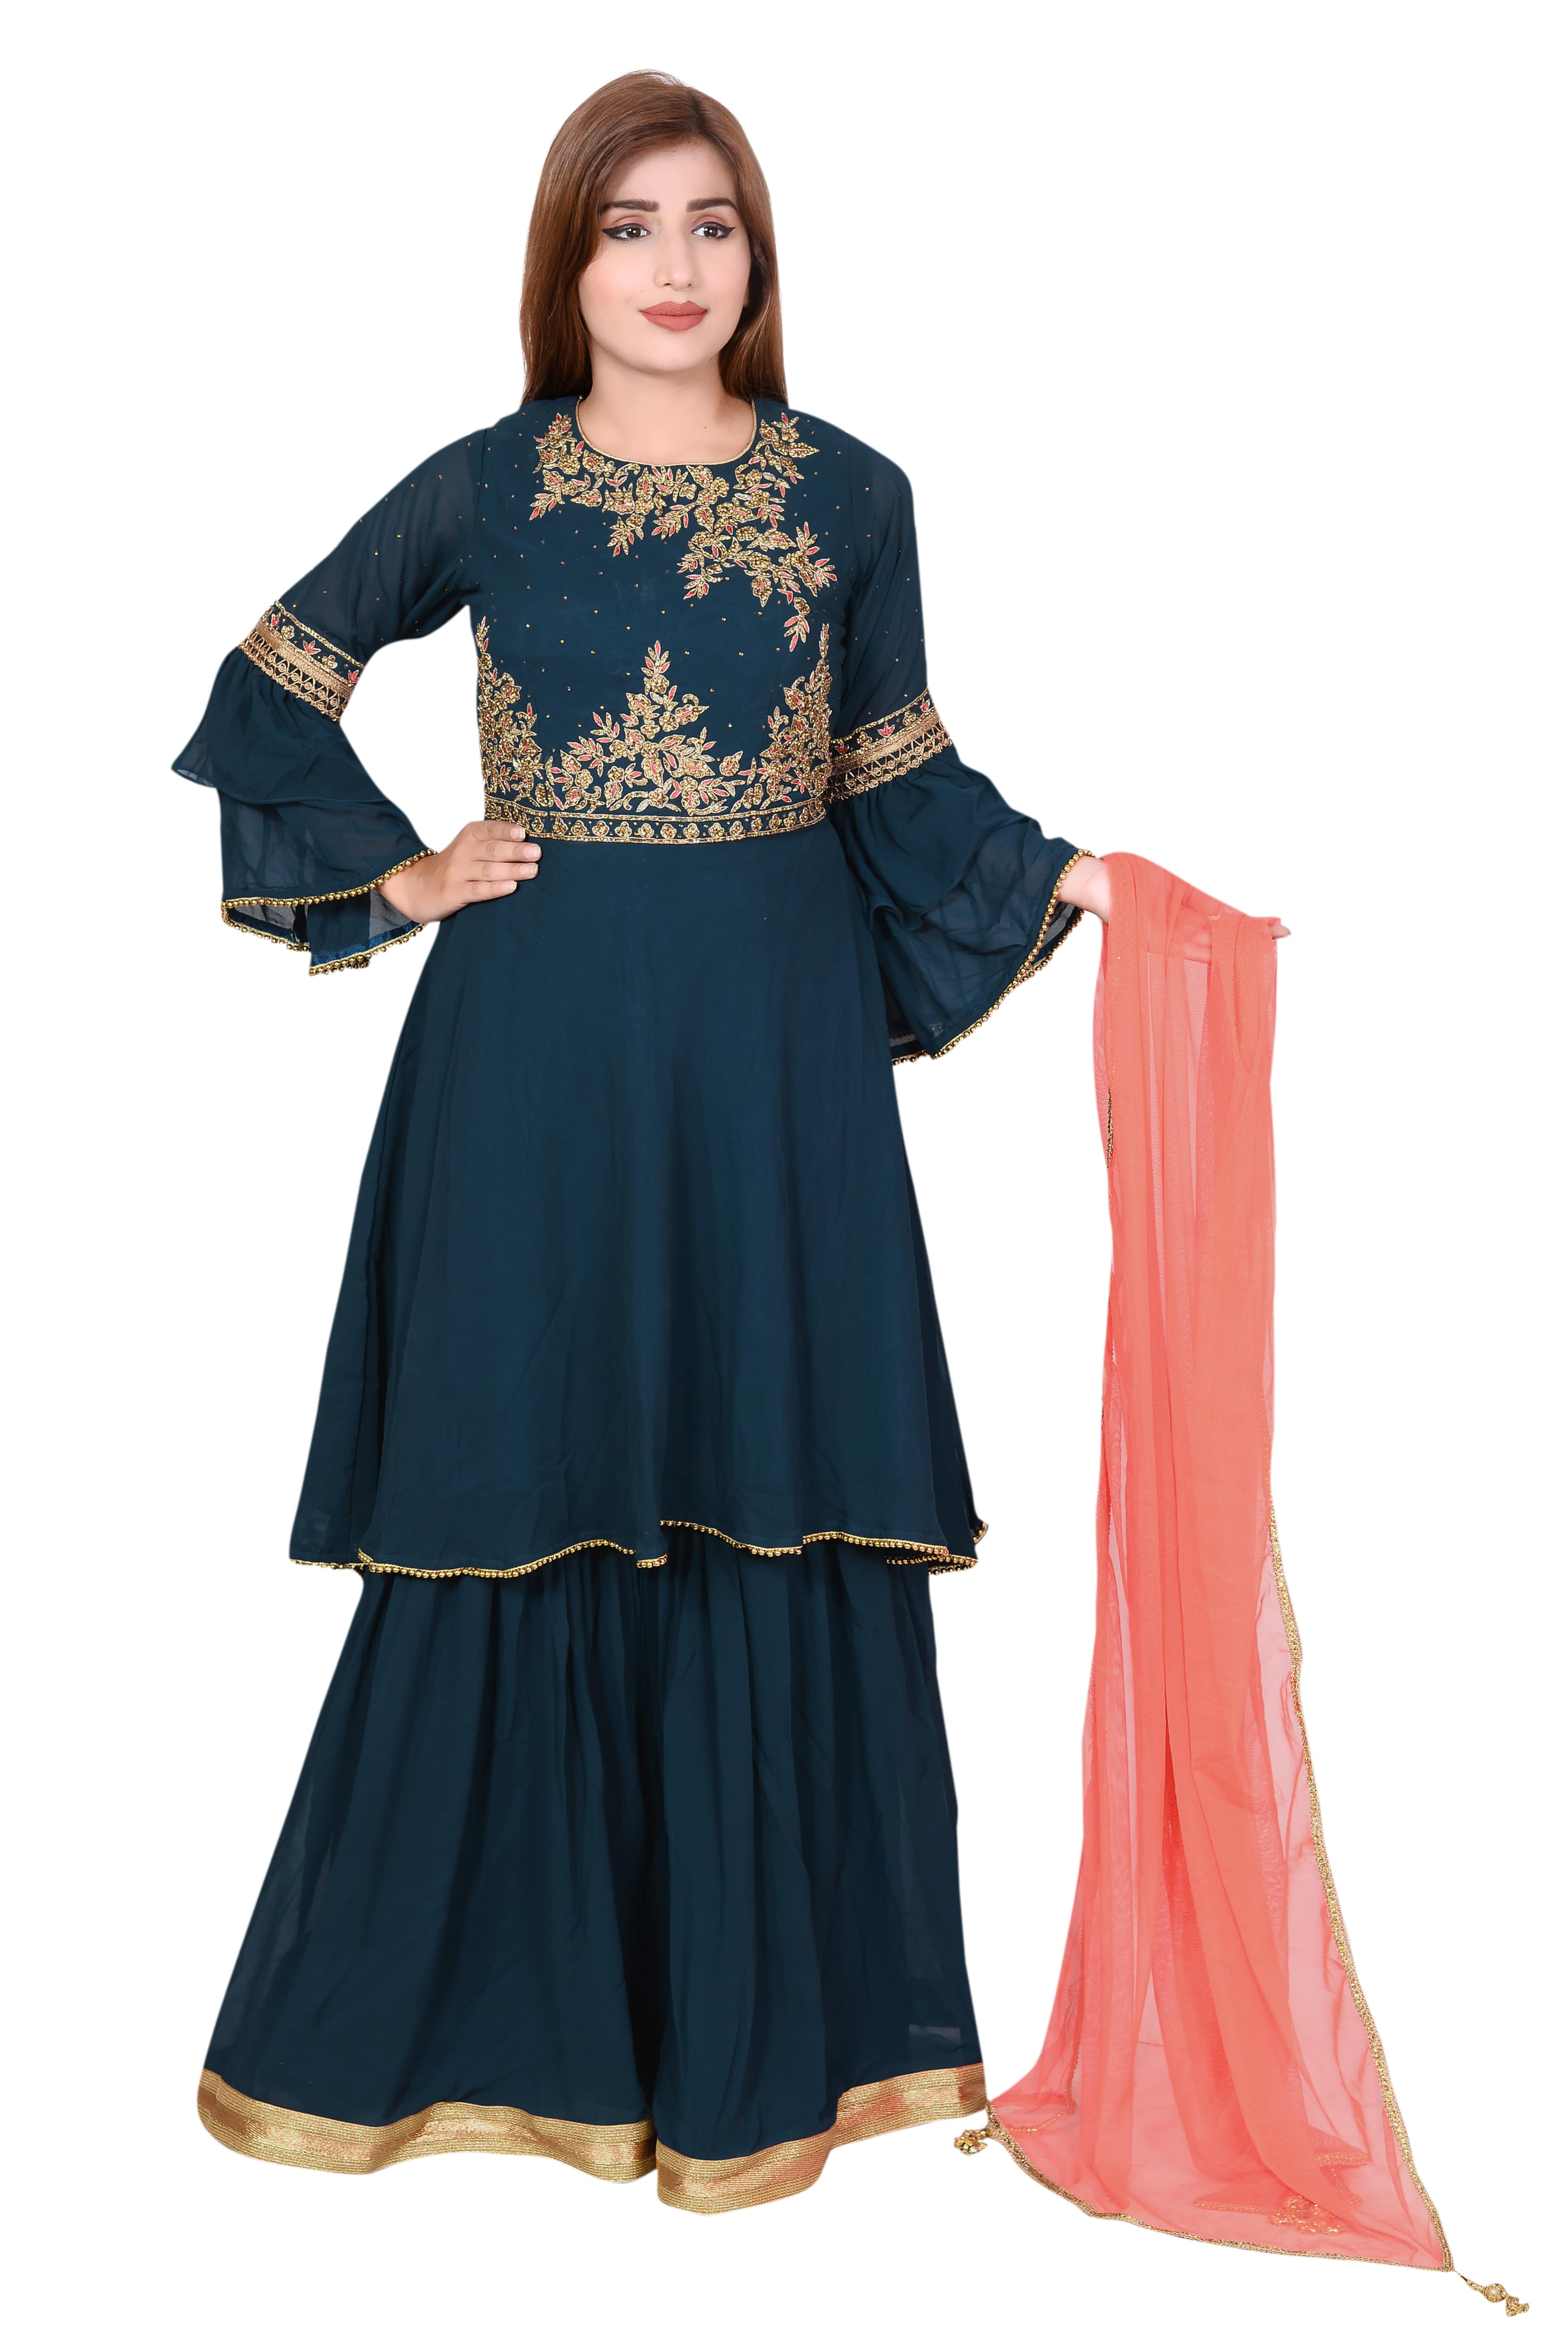 Ladies Ethnic Wear In Kangra